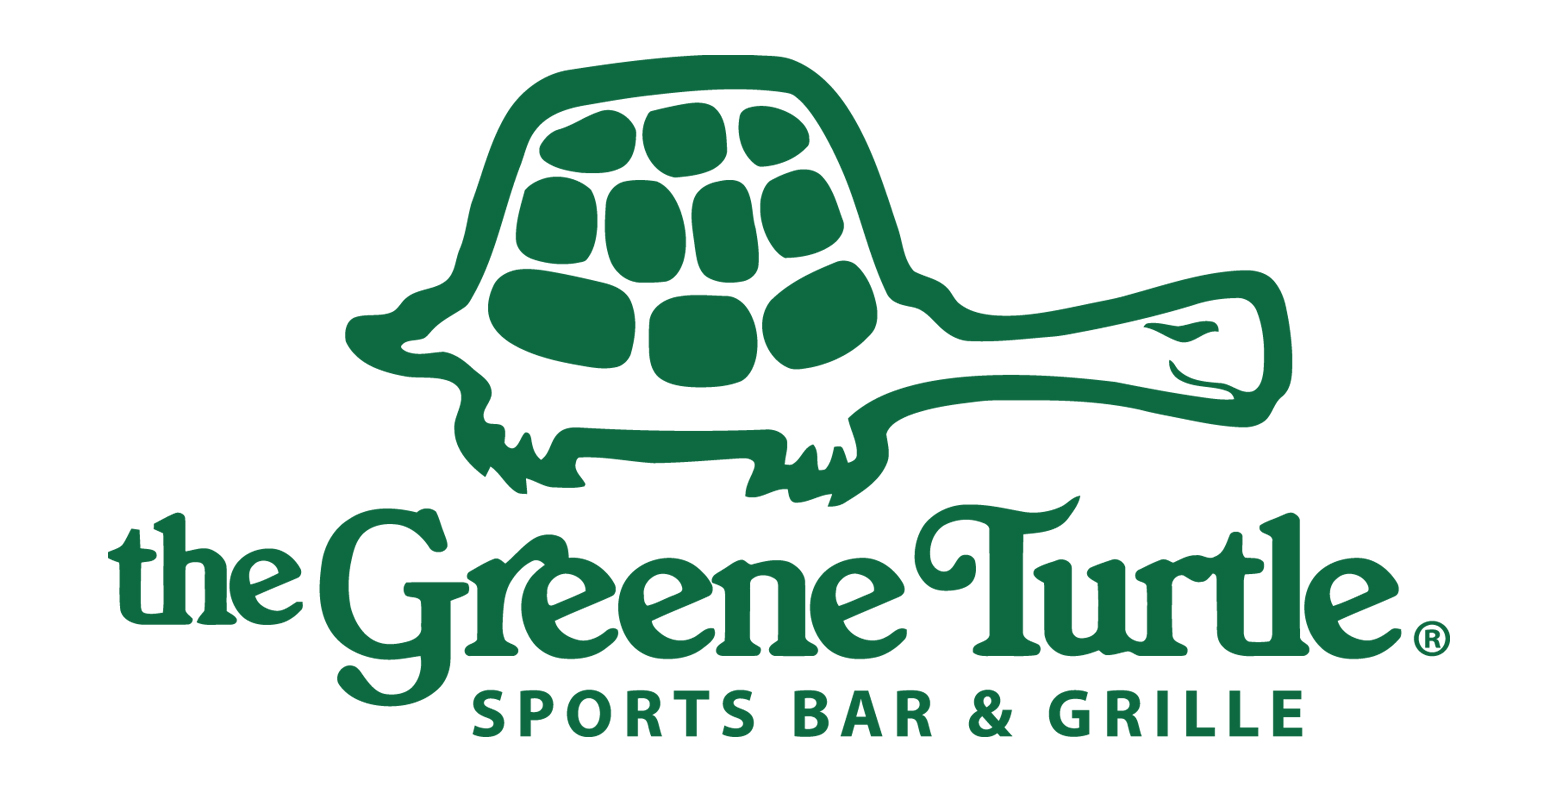 The Greene Turtle Sports Bar and Grill will close its Capital One Arena location